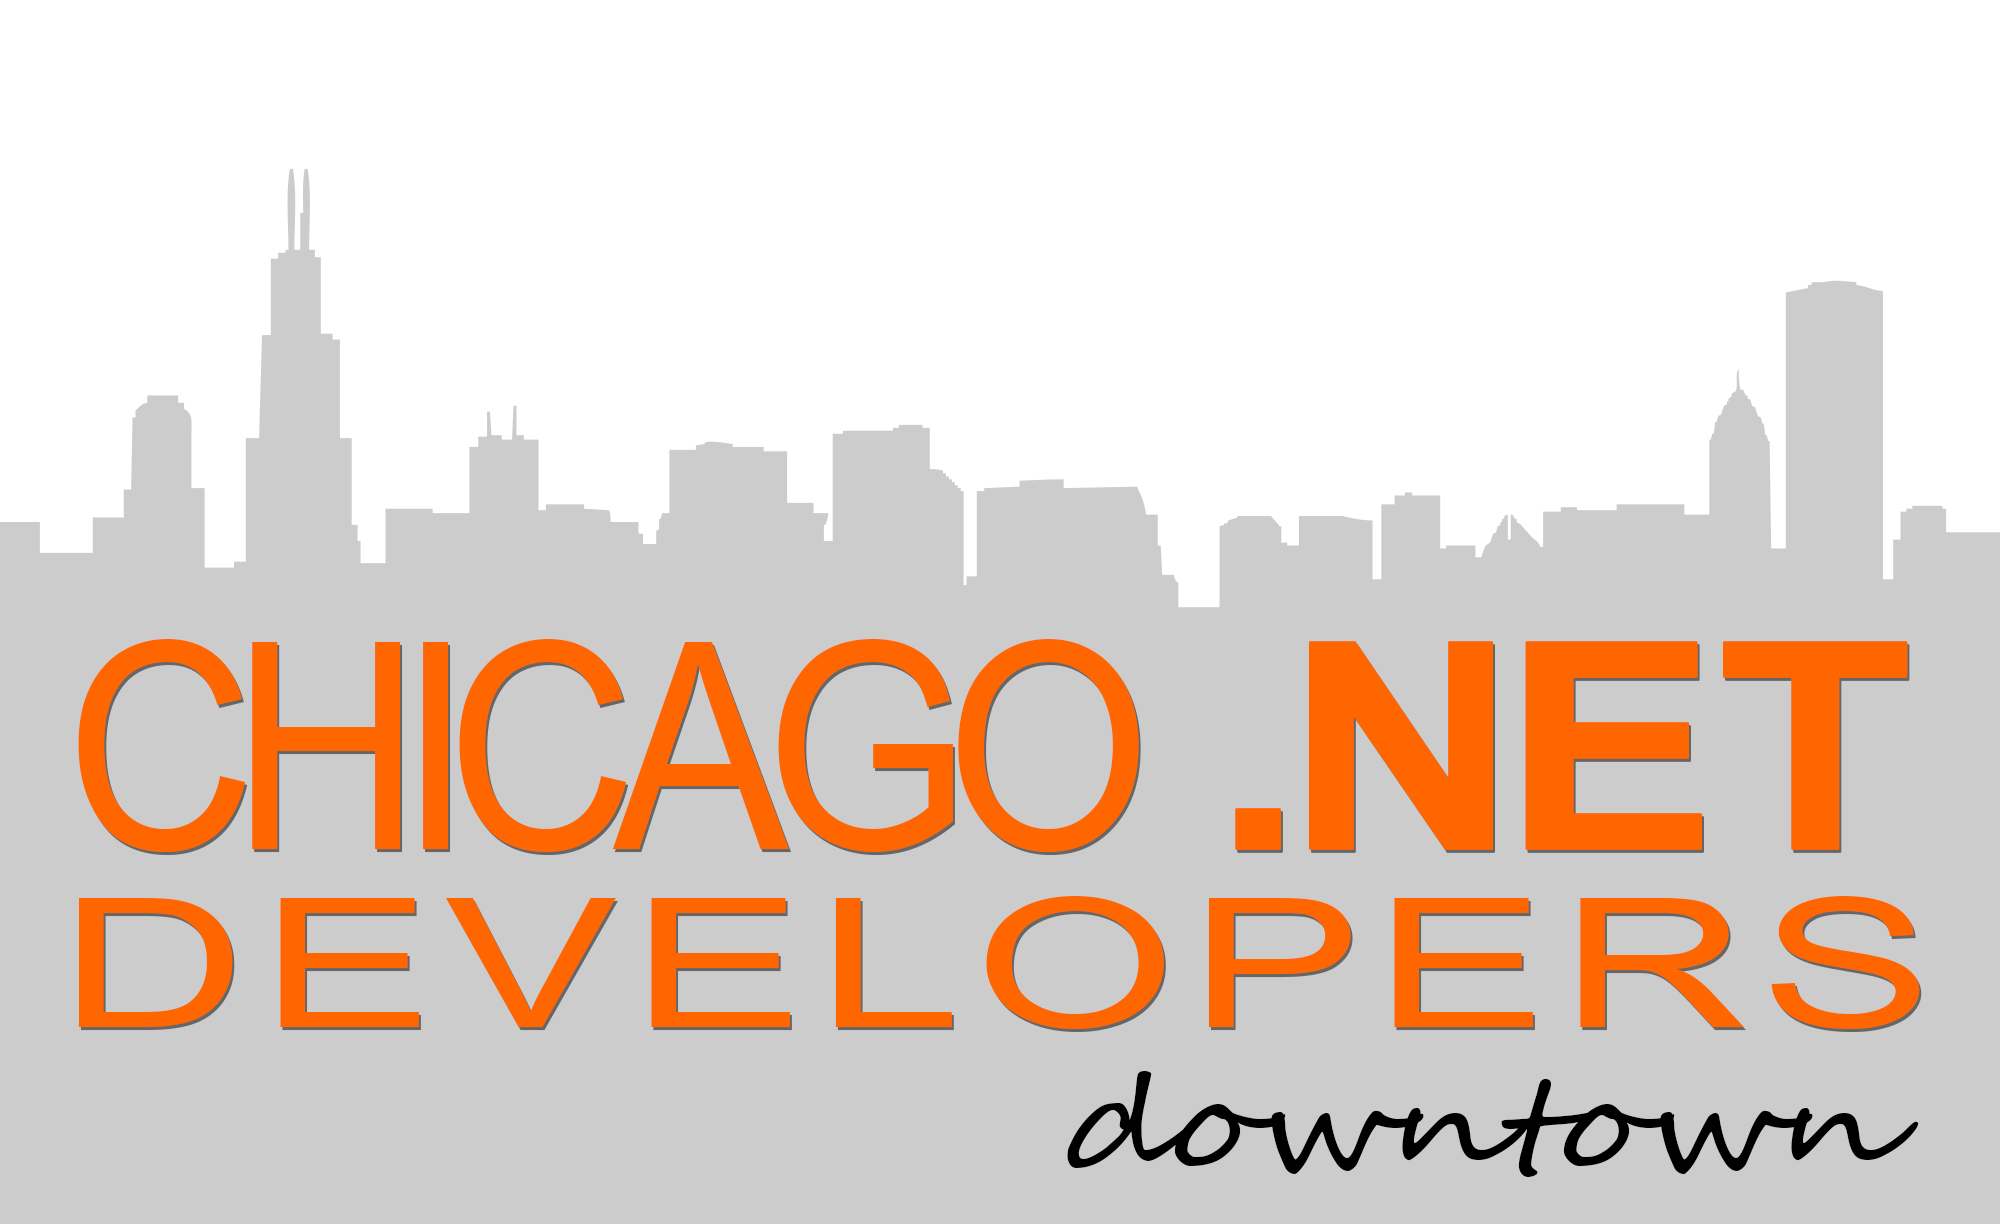 Chicago .NET Developers (downtown)